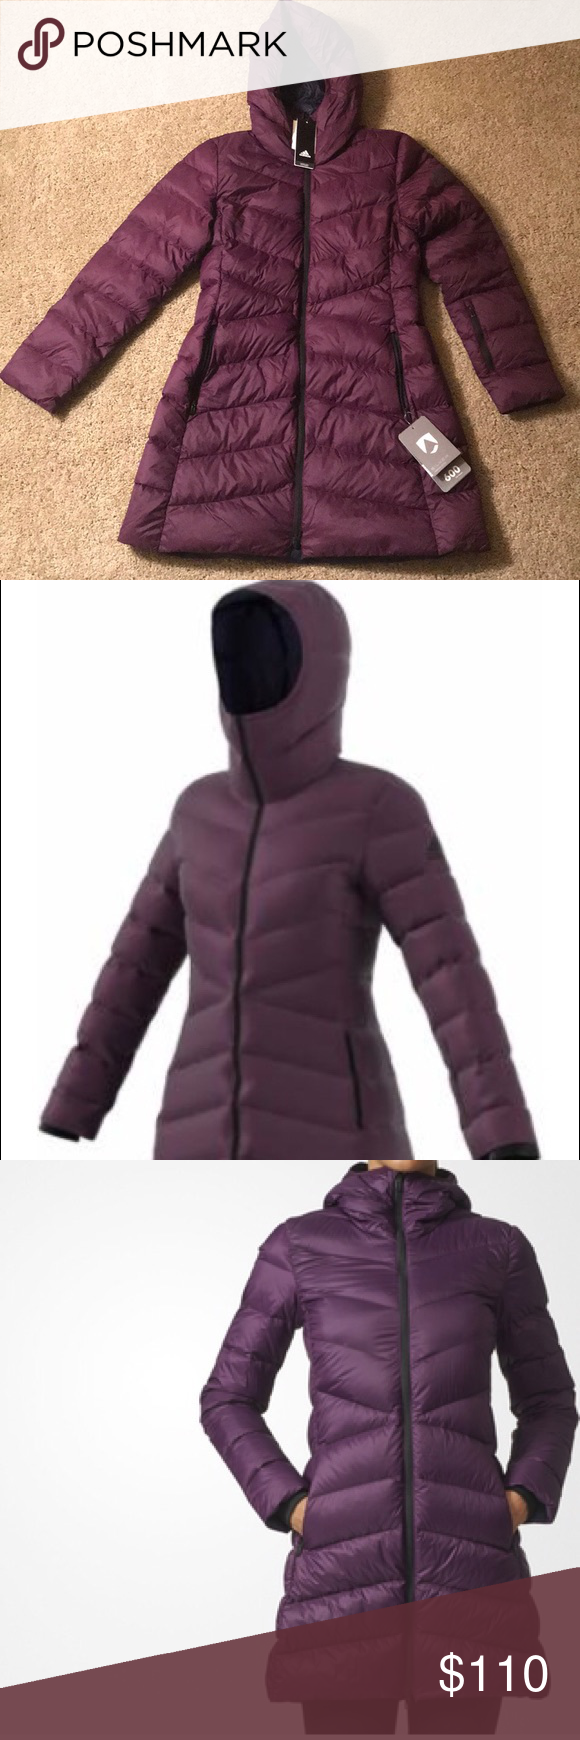 f4a1e3f7caf62 Women's Nuvic Climawarm Jacket climawarm™ keeps you warm and comfortable in  cold weather conditions Side